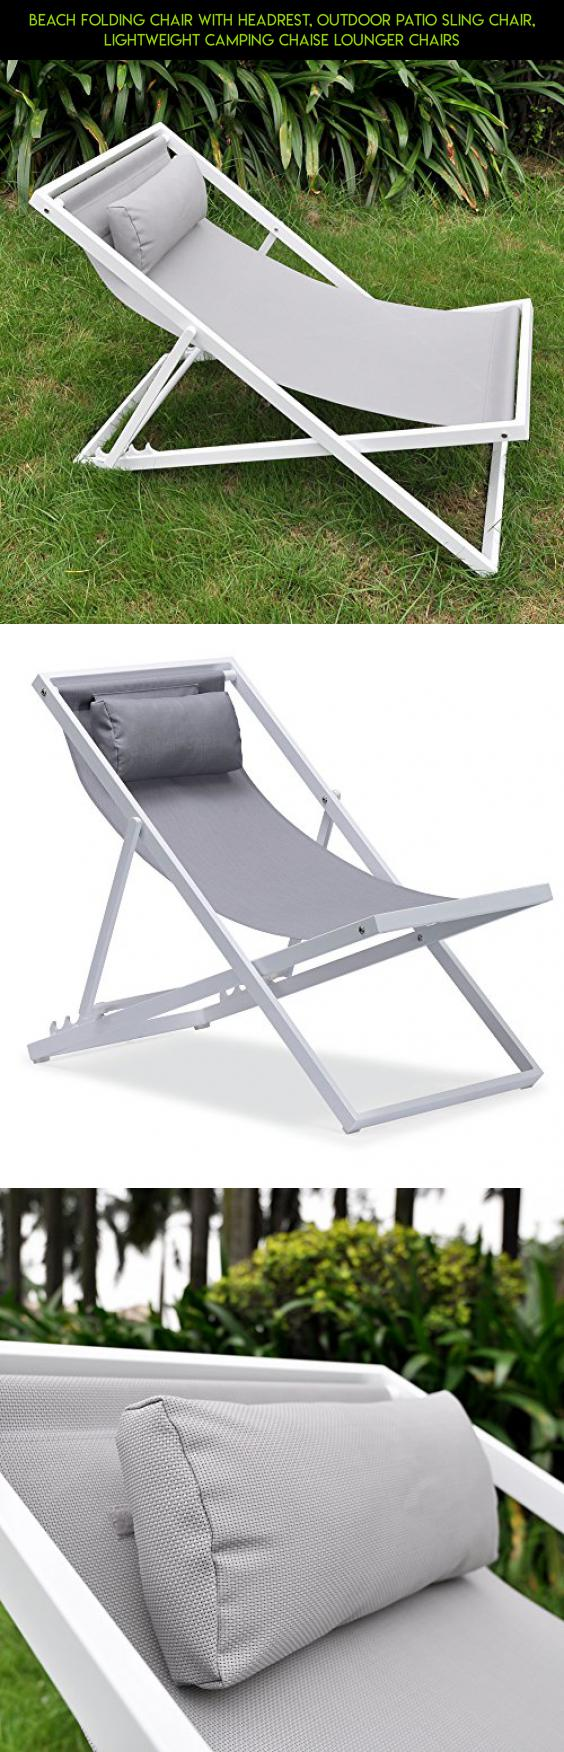 outdoor sling chairs. beach folding chair with headrest, outdoor patio sling chair, lightweight camping chaise lounger chairs n